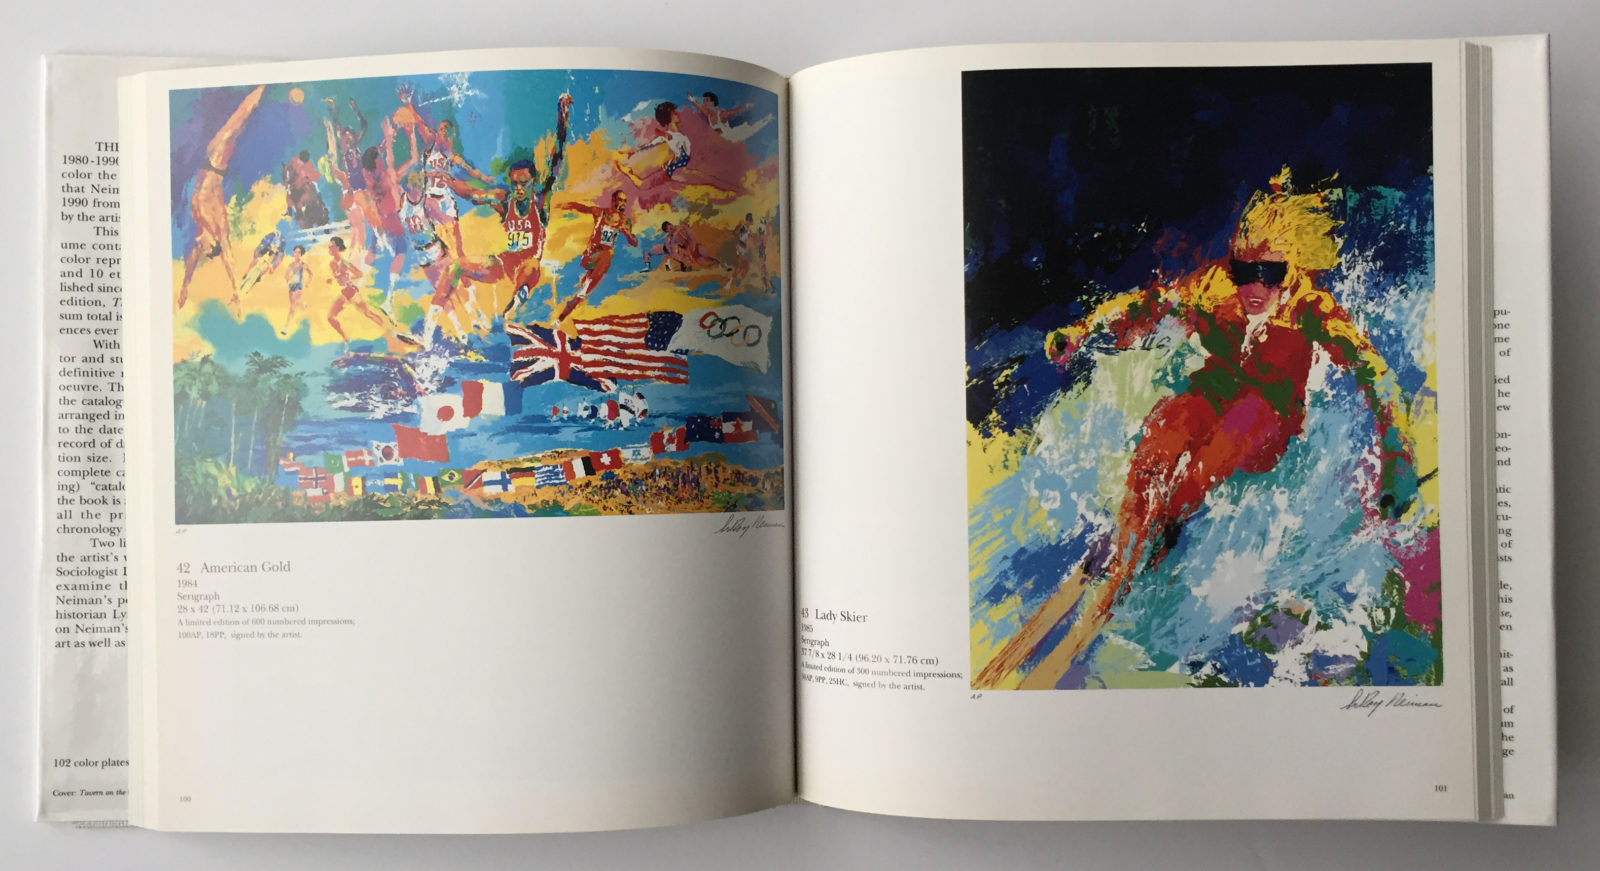 Artwork from, The Prints of LeRoy Neiman: 1980 - 1990 book